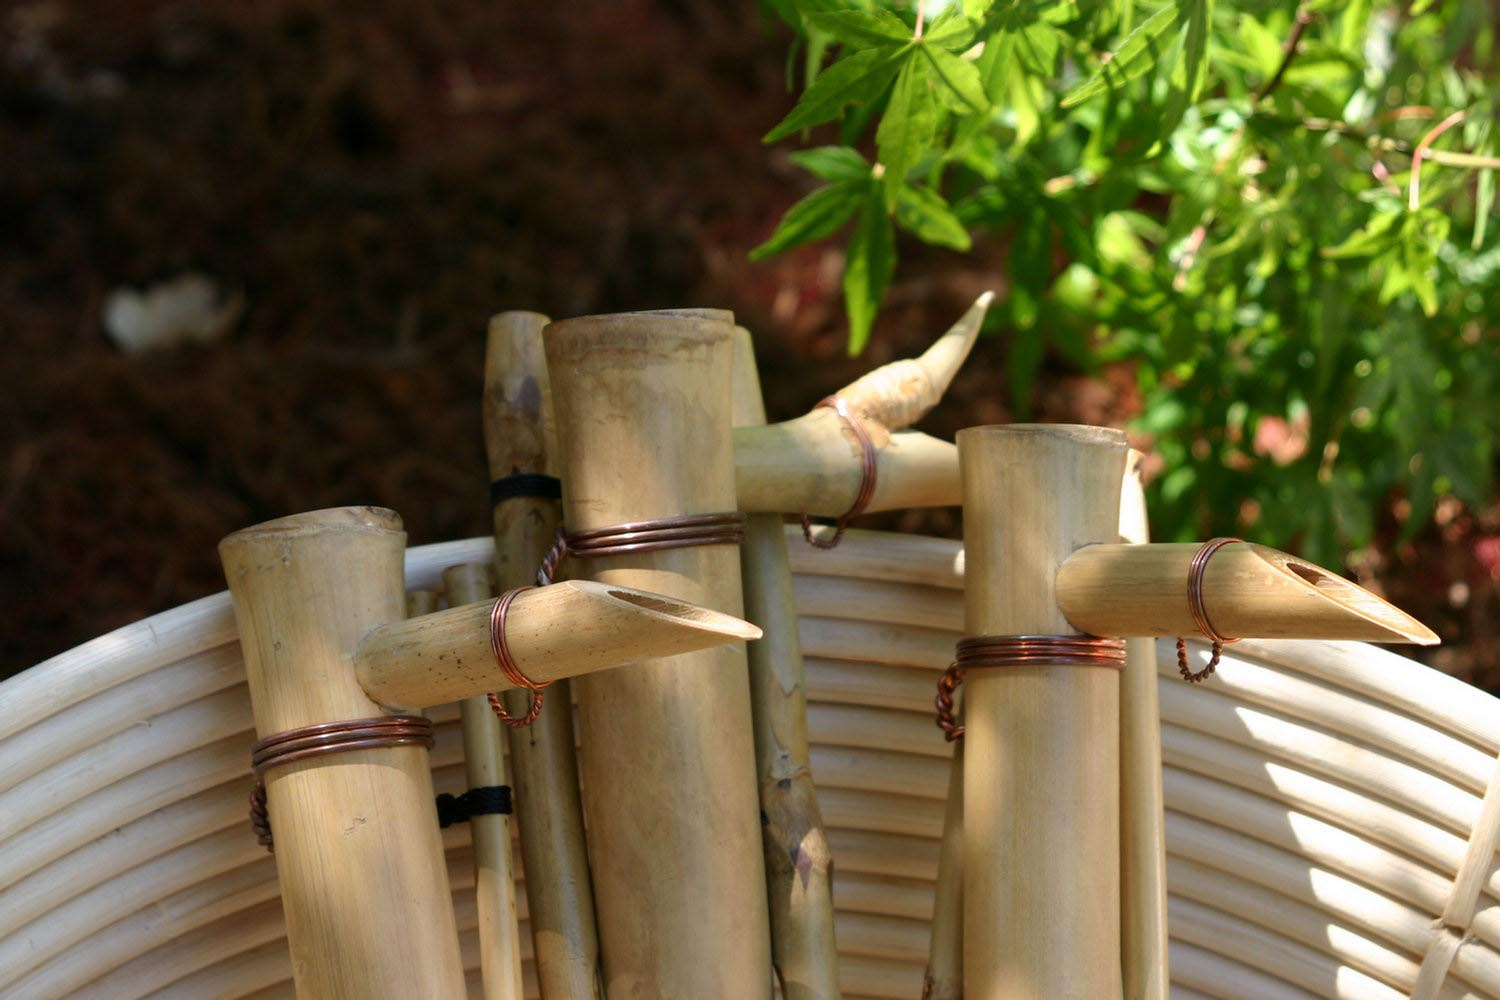 Bamboo Fountain Kit